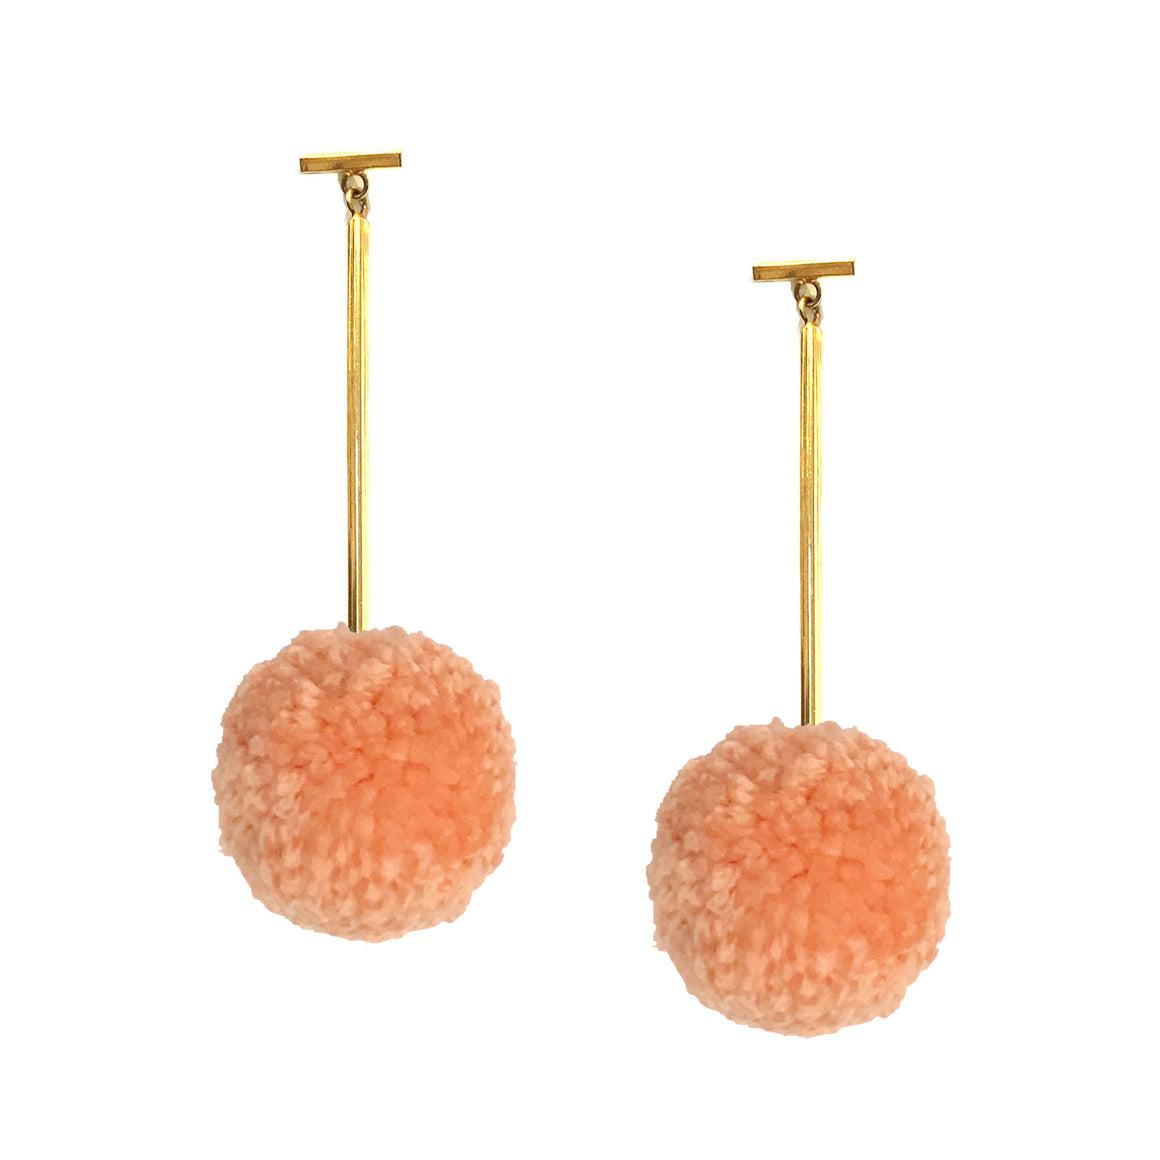 "Light Peach 2"" Yarn Pom Pom T Bar Earrings, Earring, Tuleste, Tuleste"